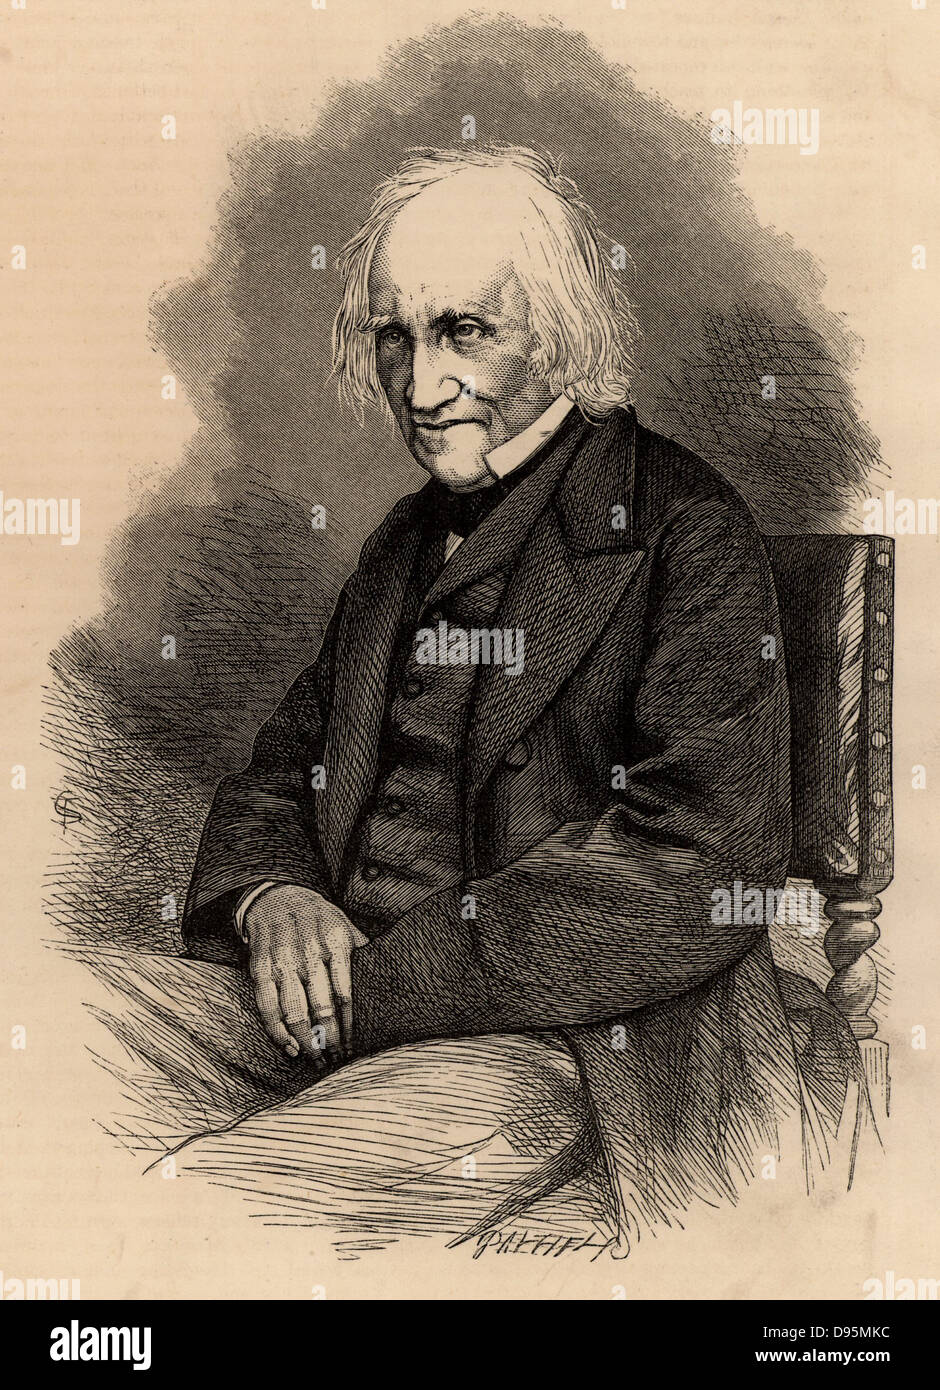 Charles Knight (1791-1873) English author and publisher of cheap illustrated books and periodicals. Wood engraving - Stock Image